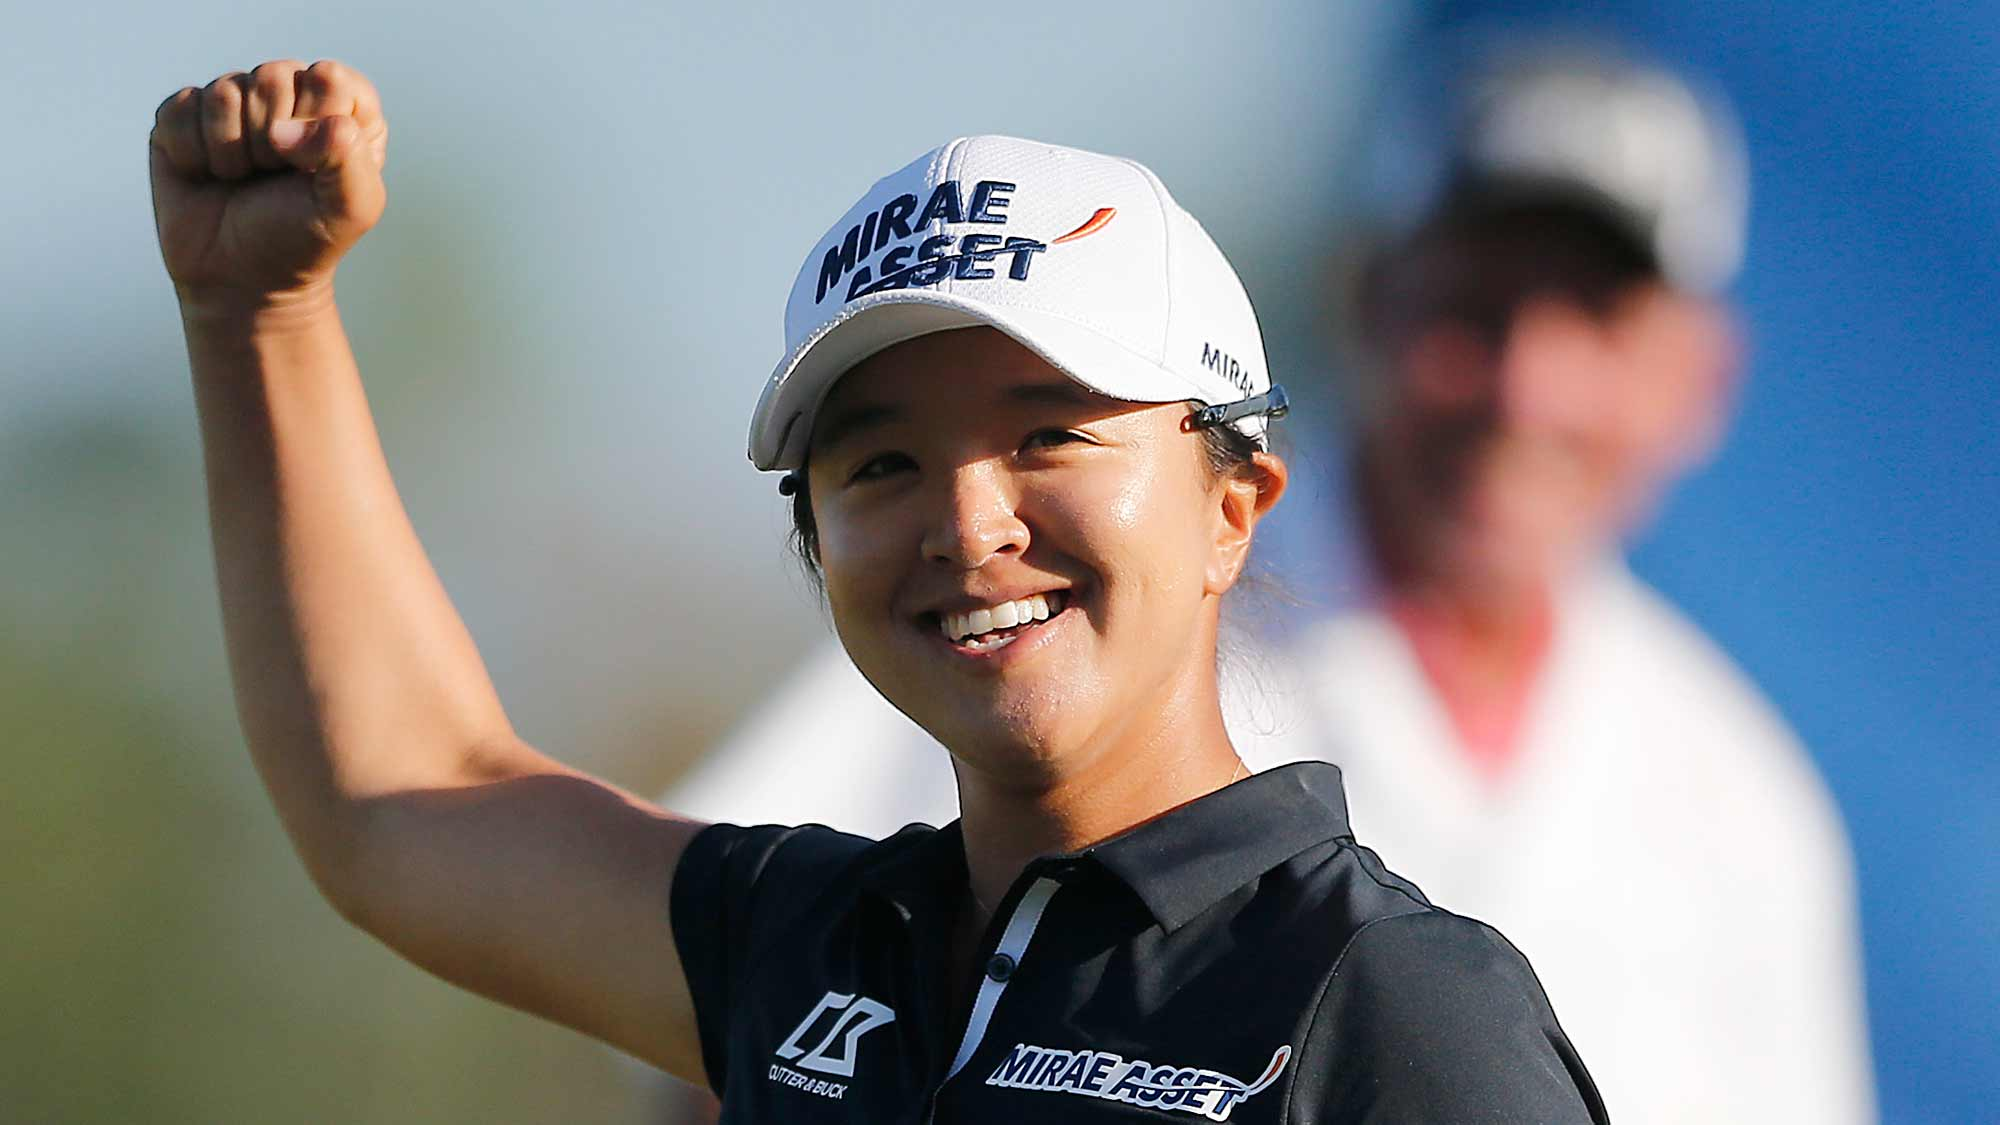 Sei Young Kim of South Korea celebrates after making a putt on the 18th green to win the CME Group Tour Championship at Tiburon Golf Club on November 24, 2019 in Naples, Florida